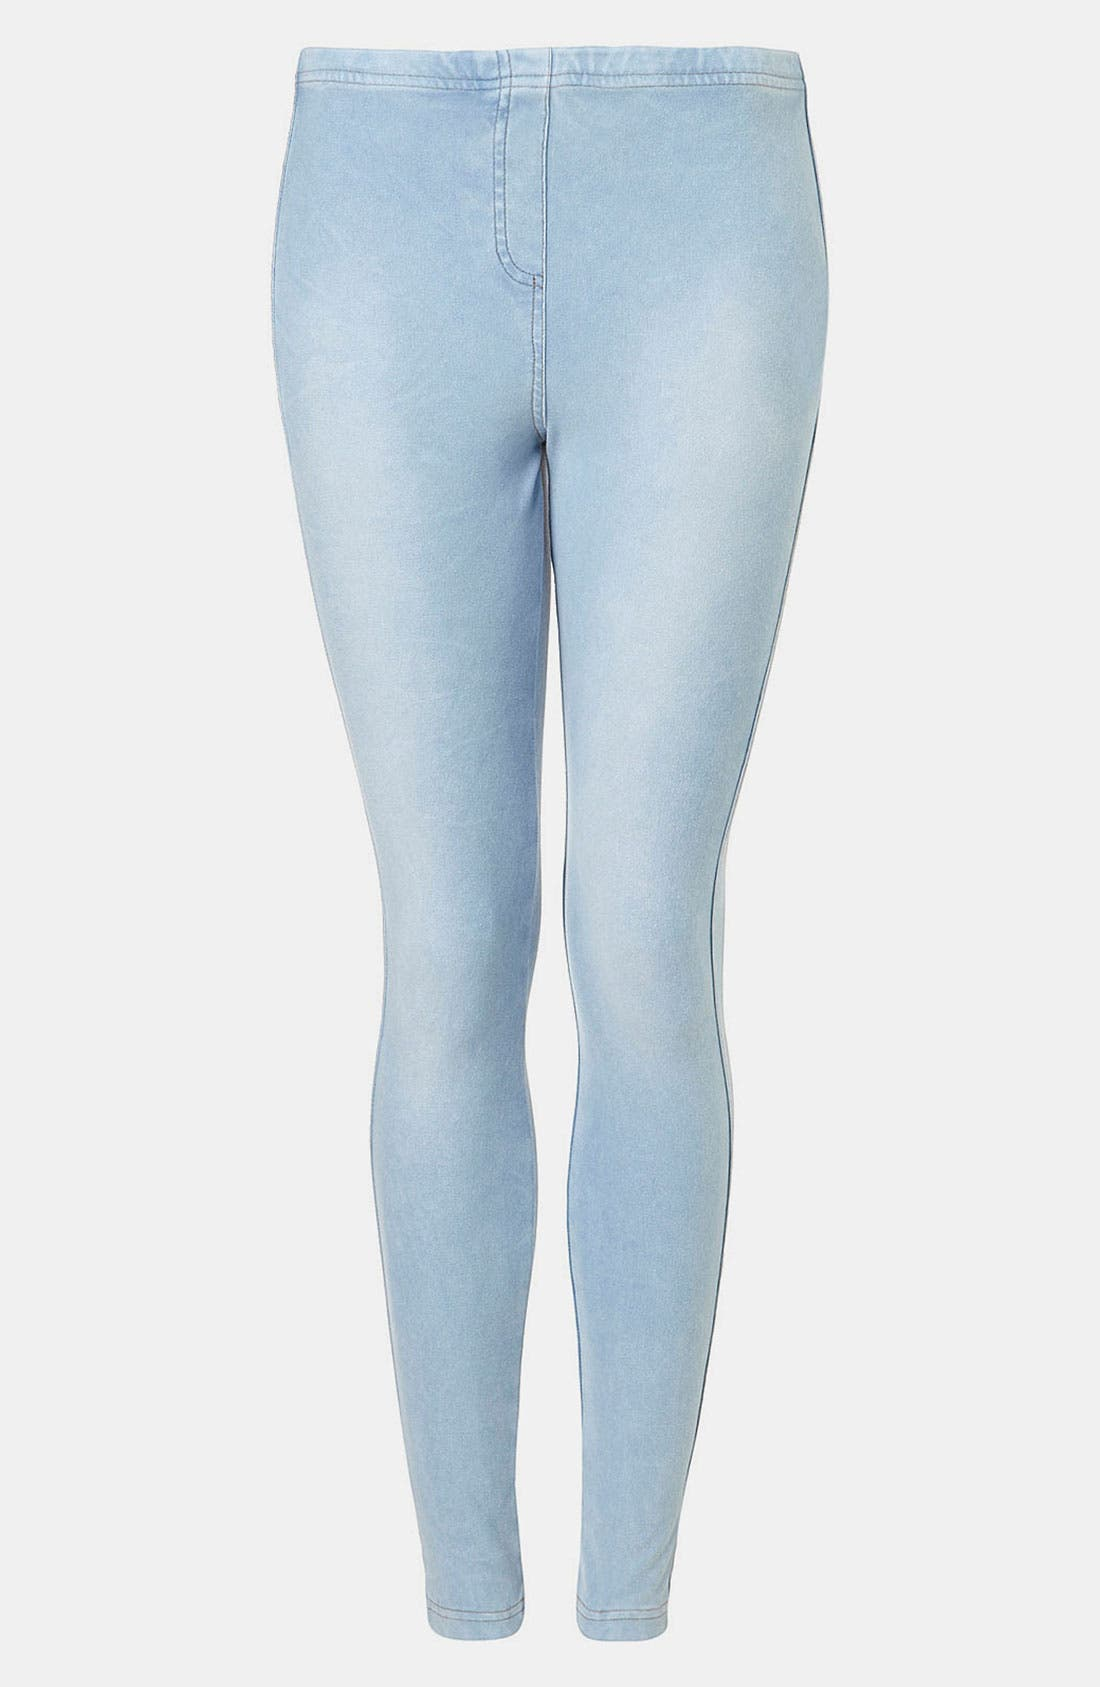 Main Image - Topshop Bleach-Wash Denim Leggings